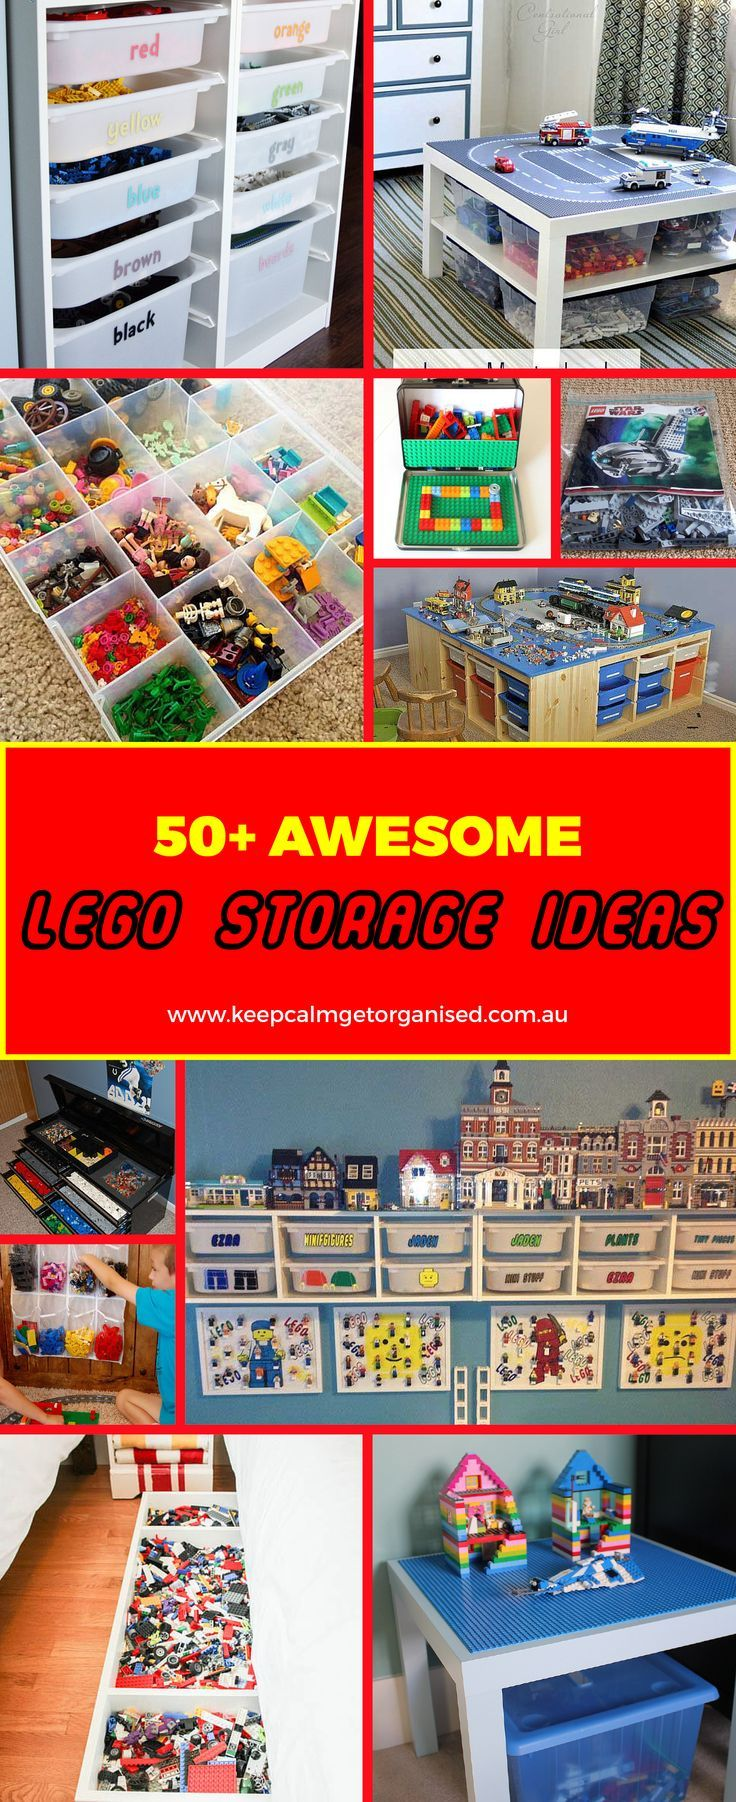 Hereu0027s A Major List Of Inspiration For LEGO Storage Ideas. From Over The  Closet Shoe Holders Where Bricks Can Be Sorted By Color Or Size, To  Repurposed Tool ...